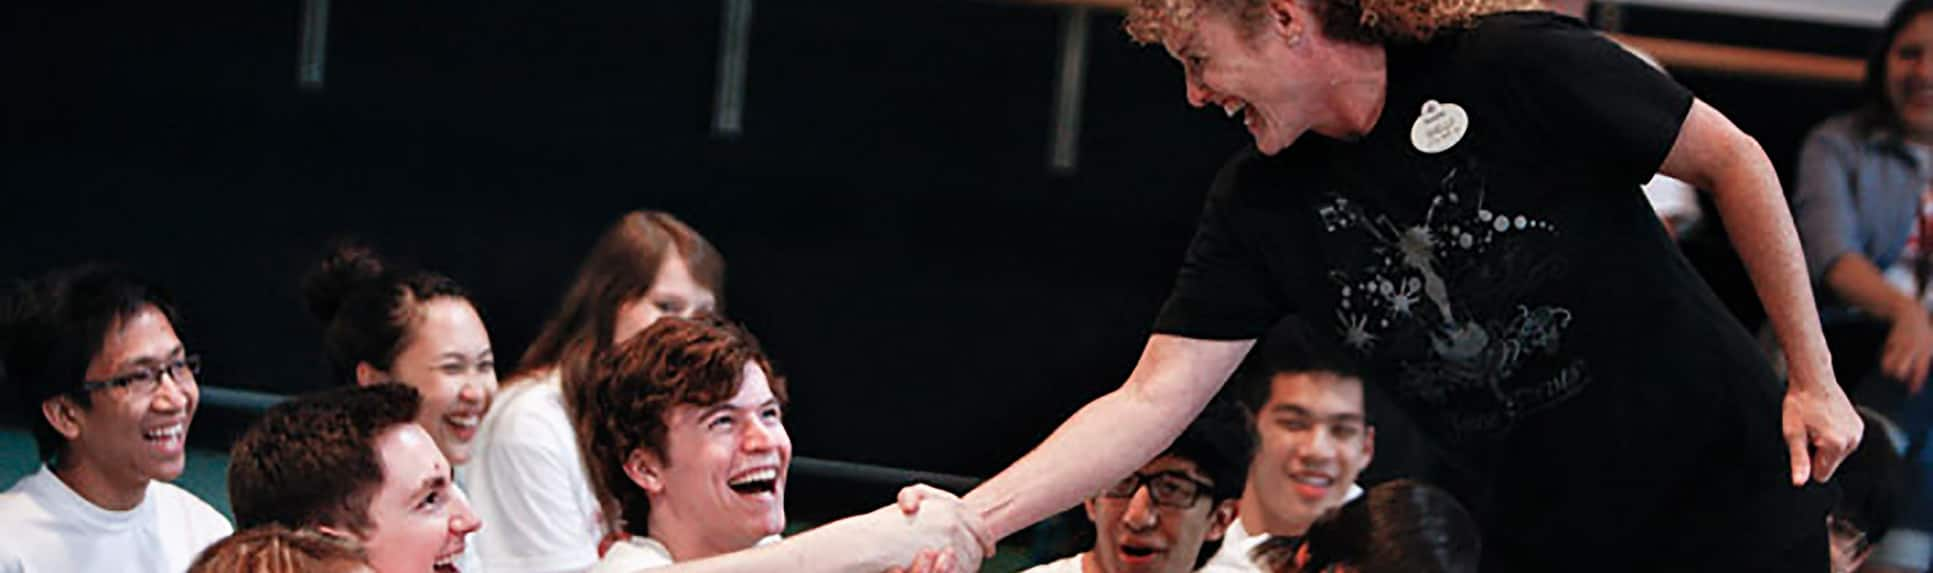 A Cast Member shaking hands with a smiling young man